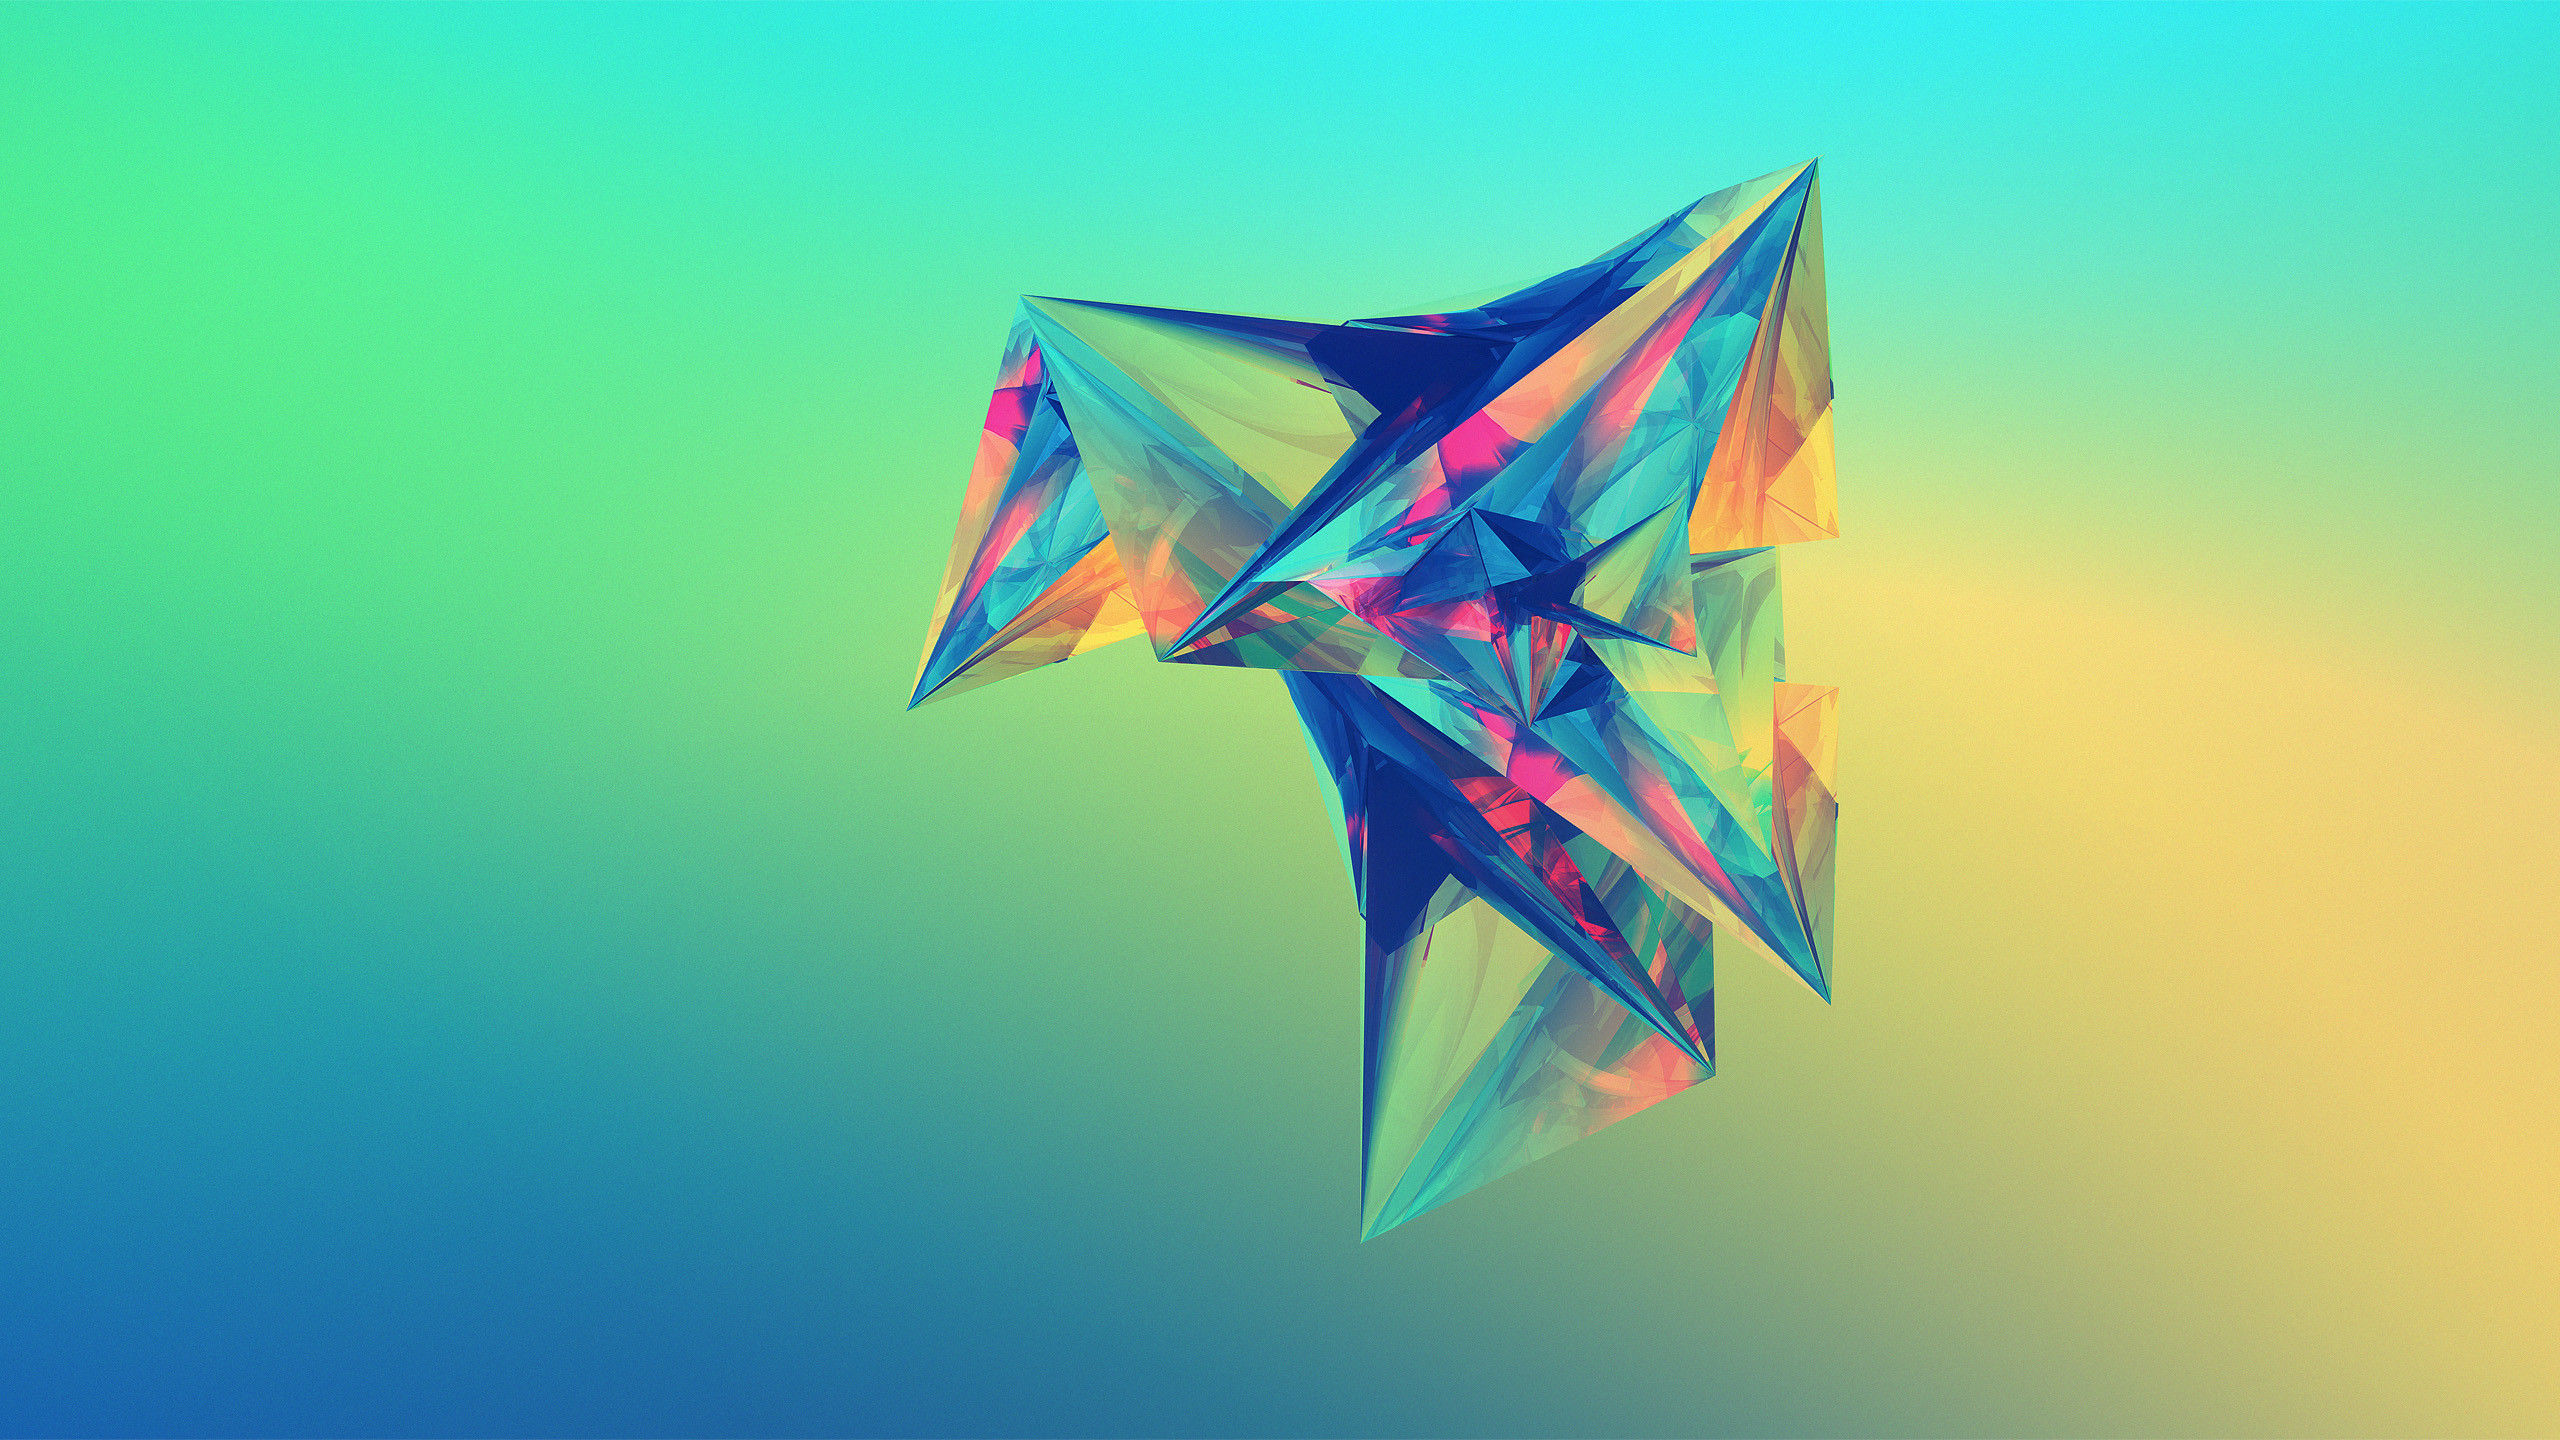 Abstract Wallpaper By Justin Maller